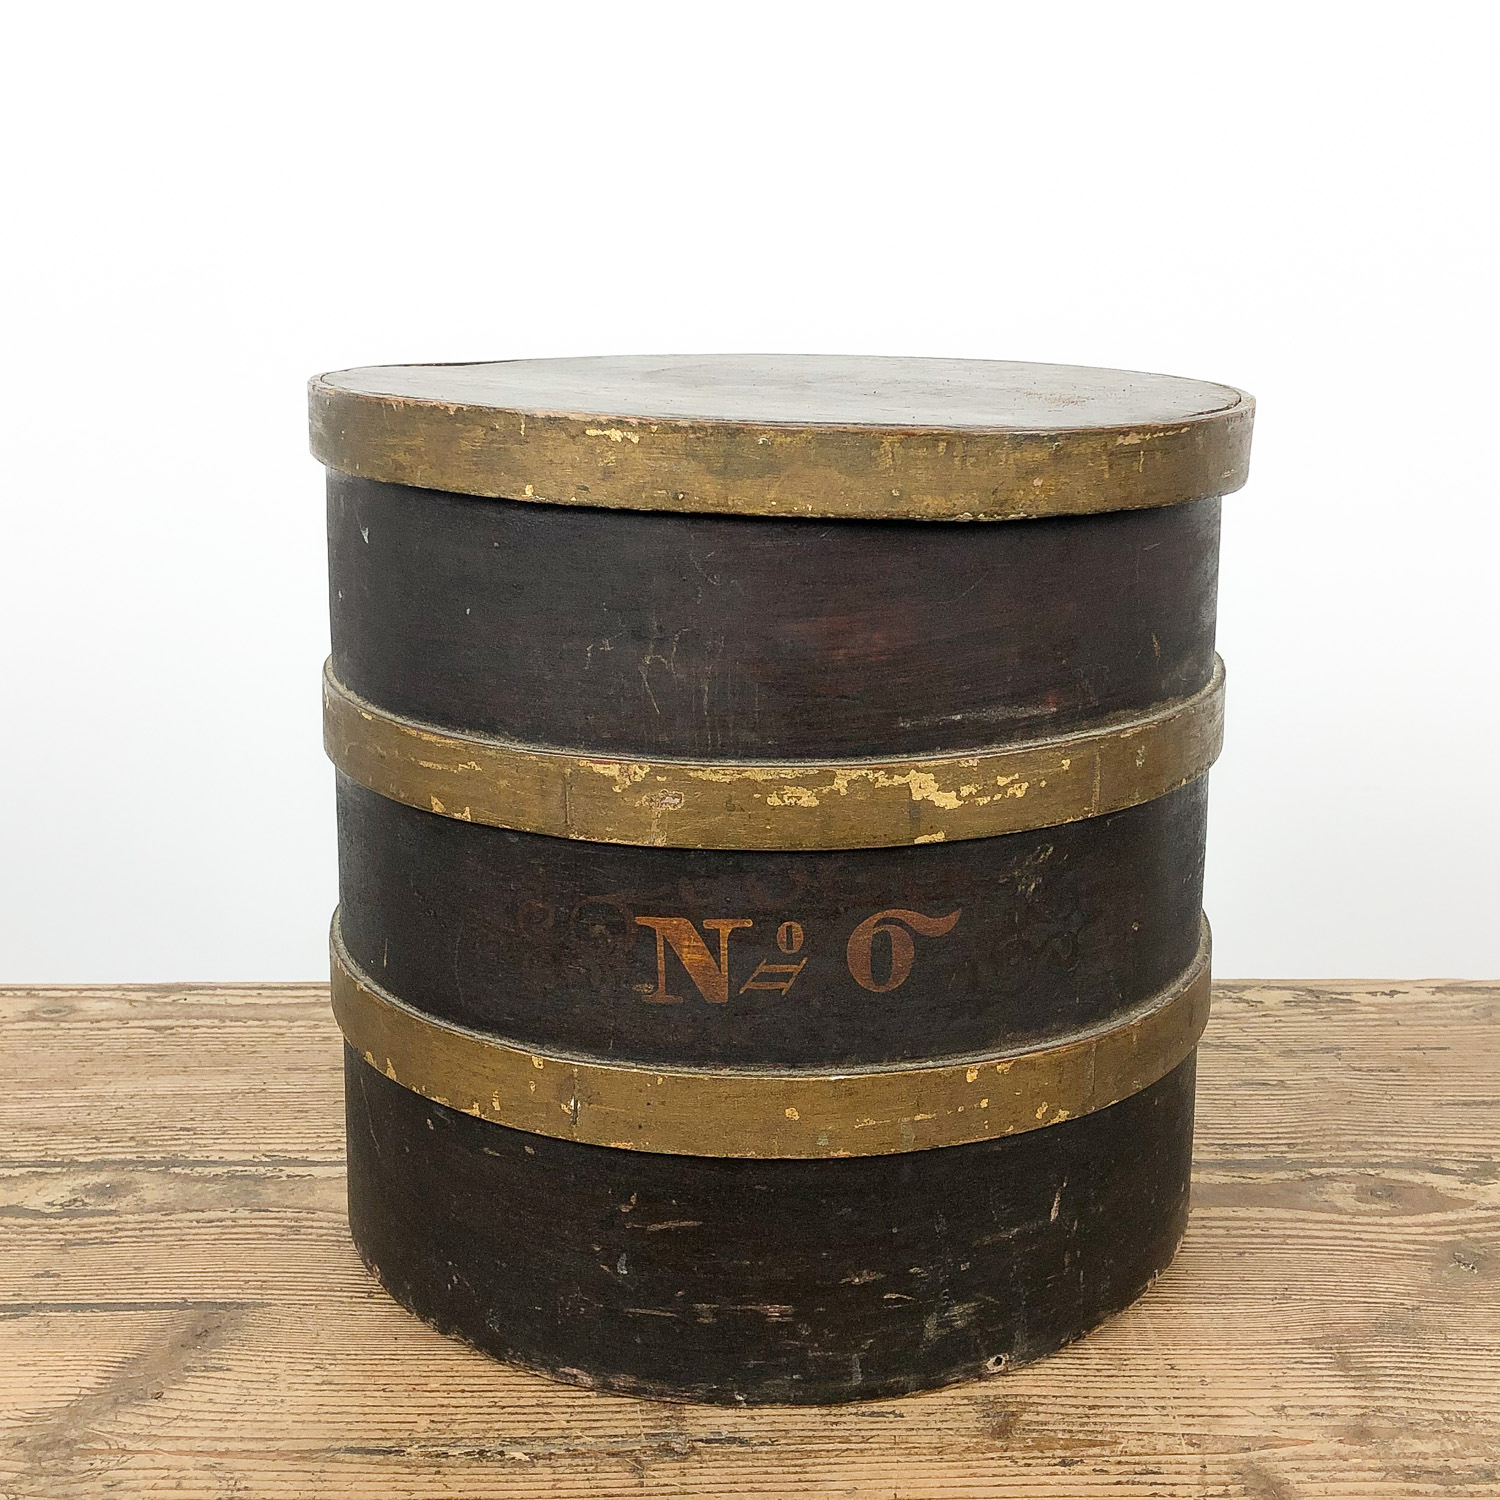 Antique brown gold painted bentwood storage box 19th century no6